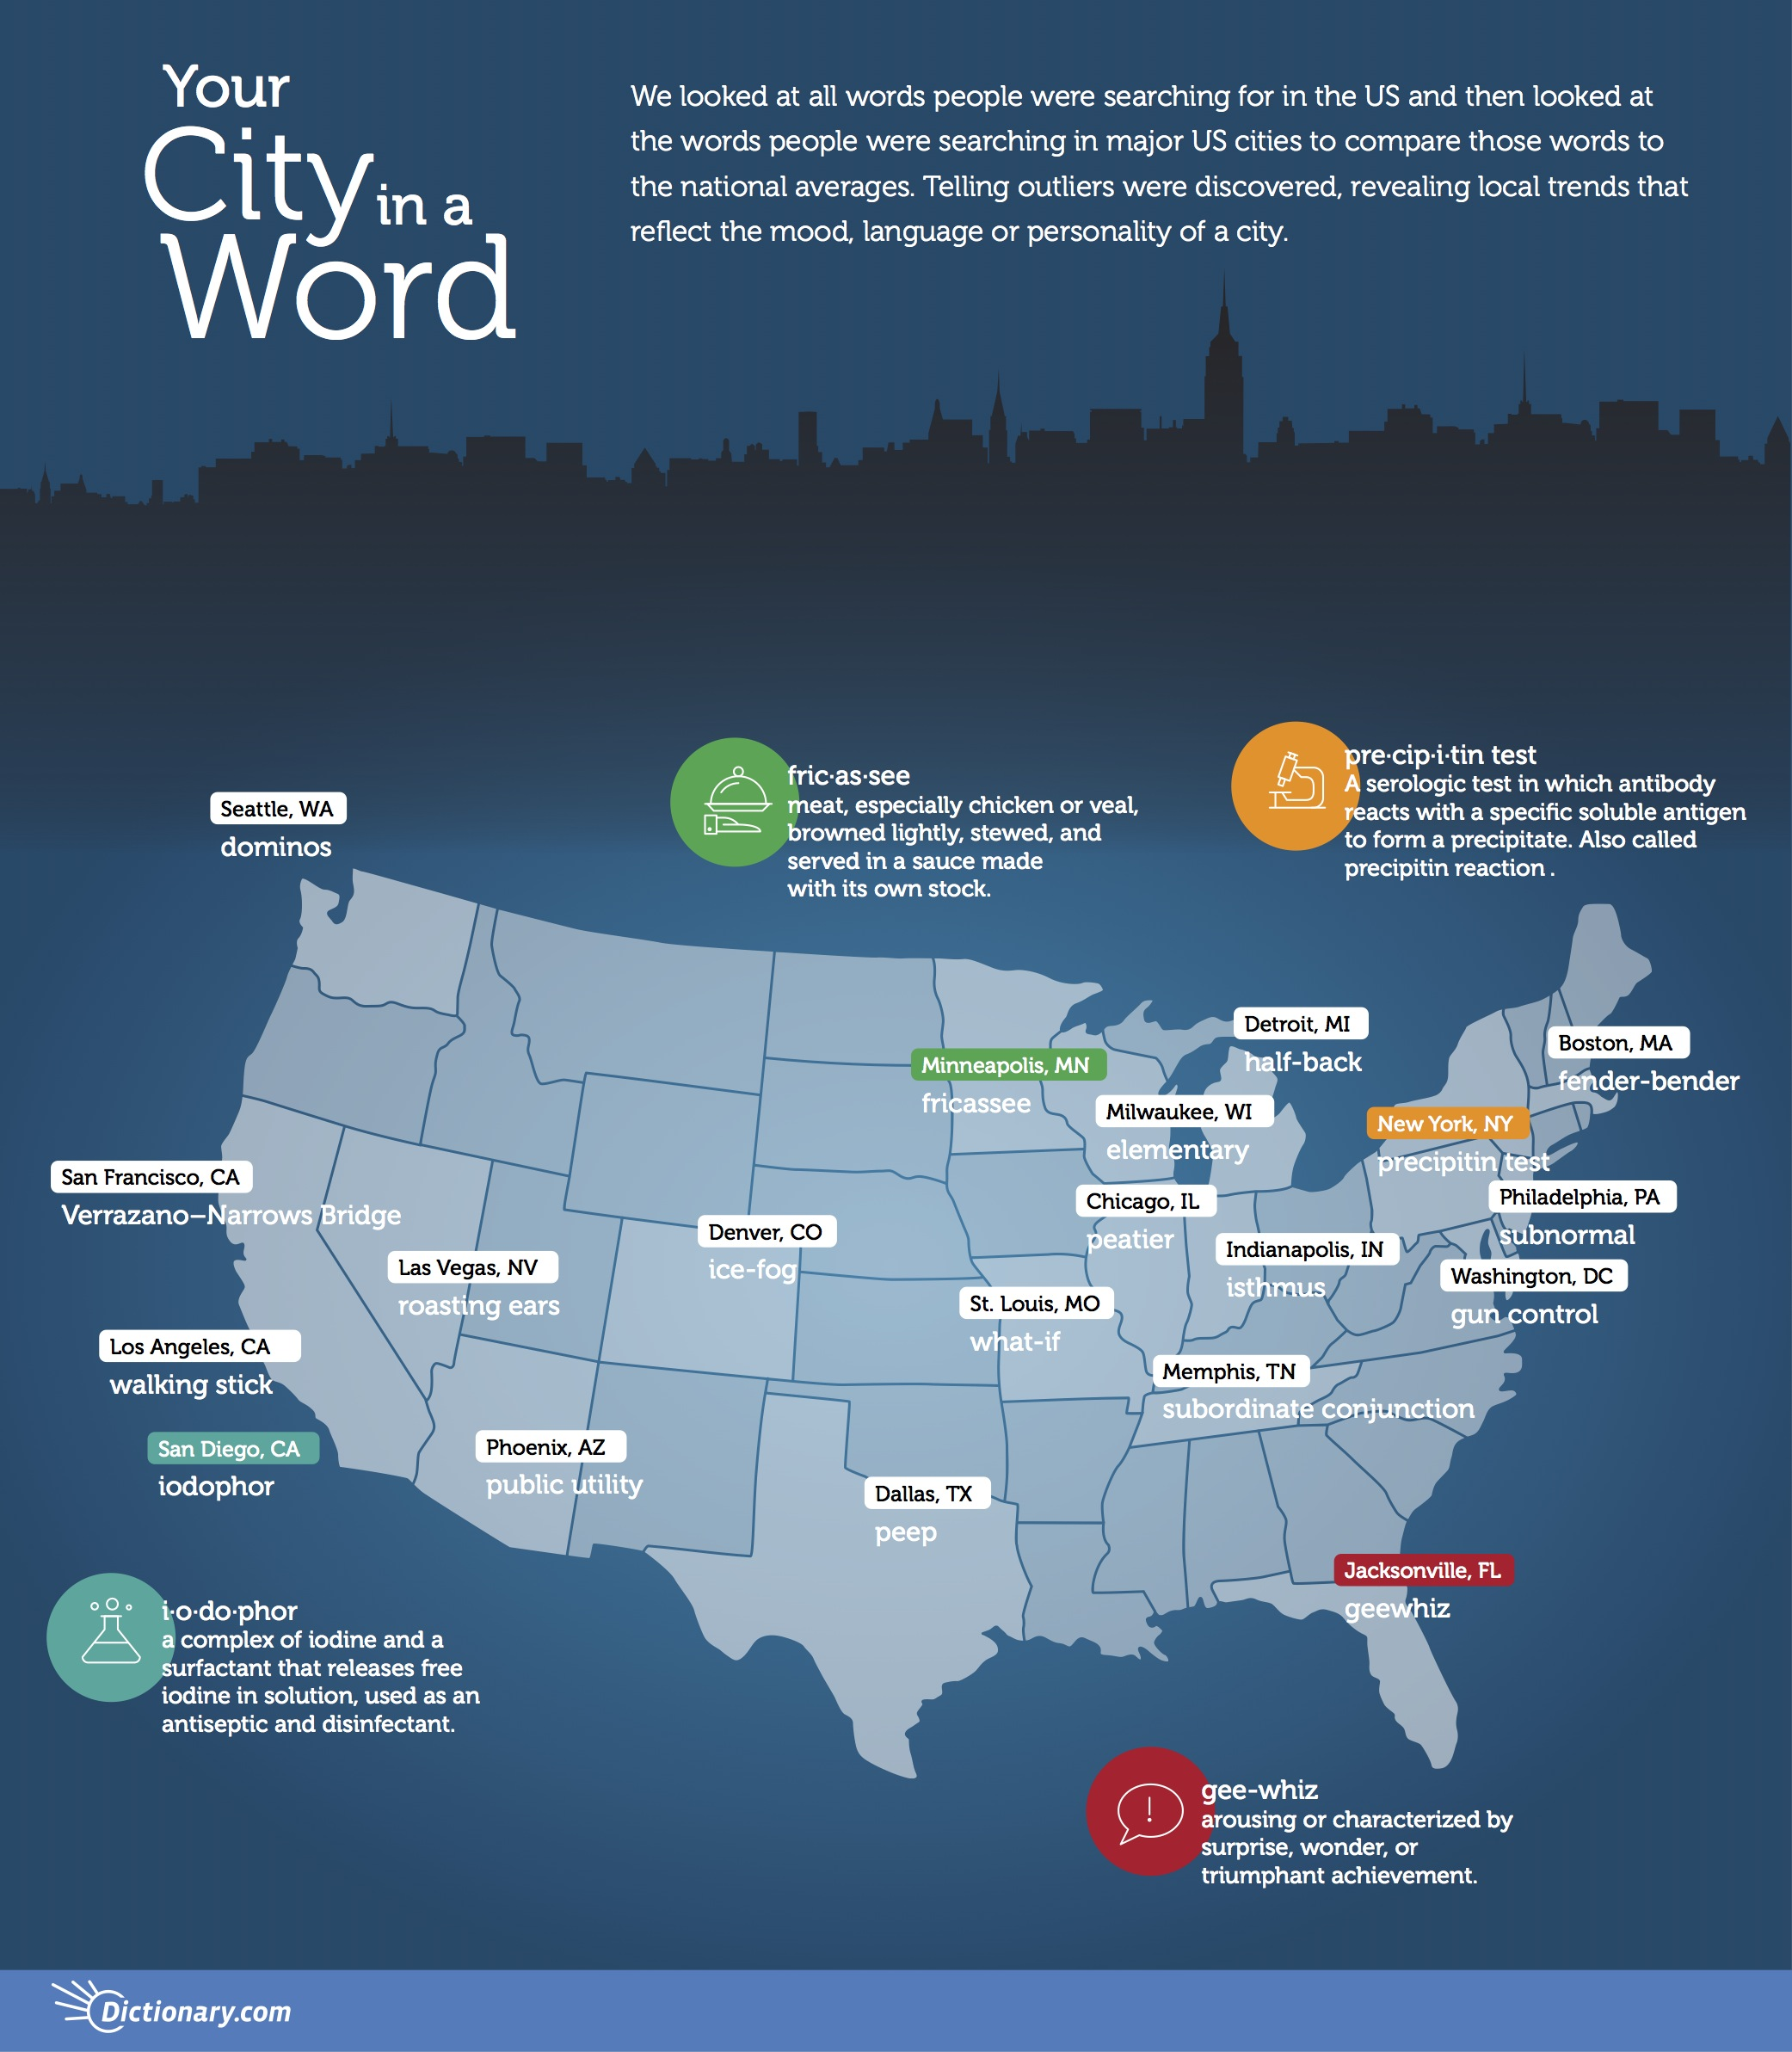 Your City in a Word